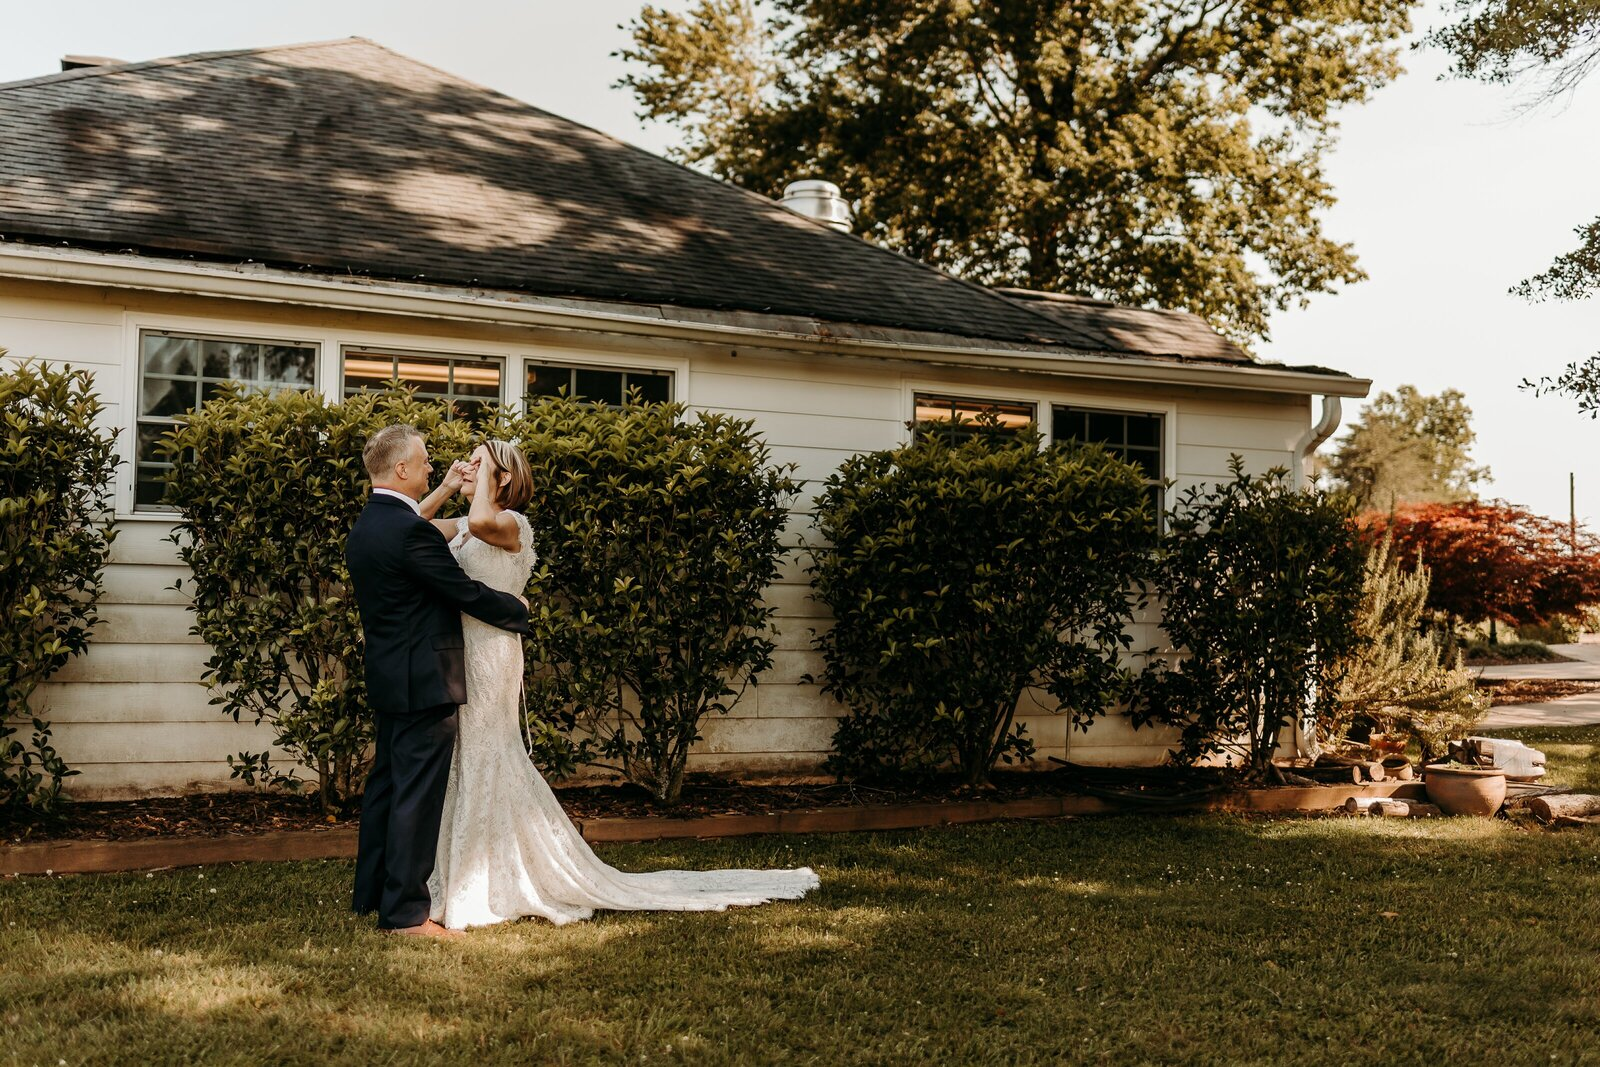 J.Michelle Photography photographs bride and groom first look